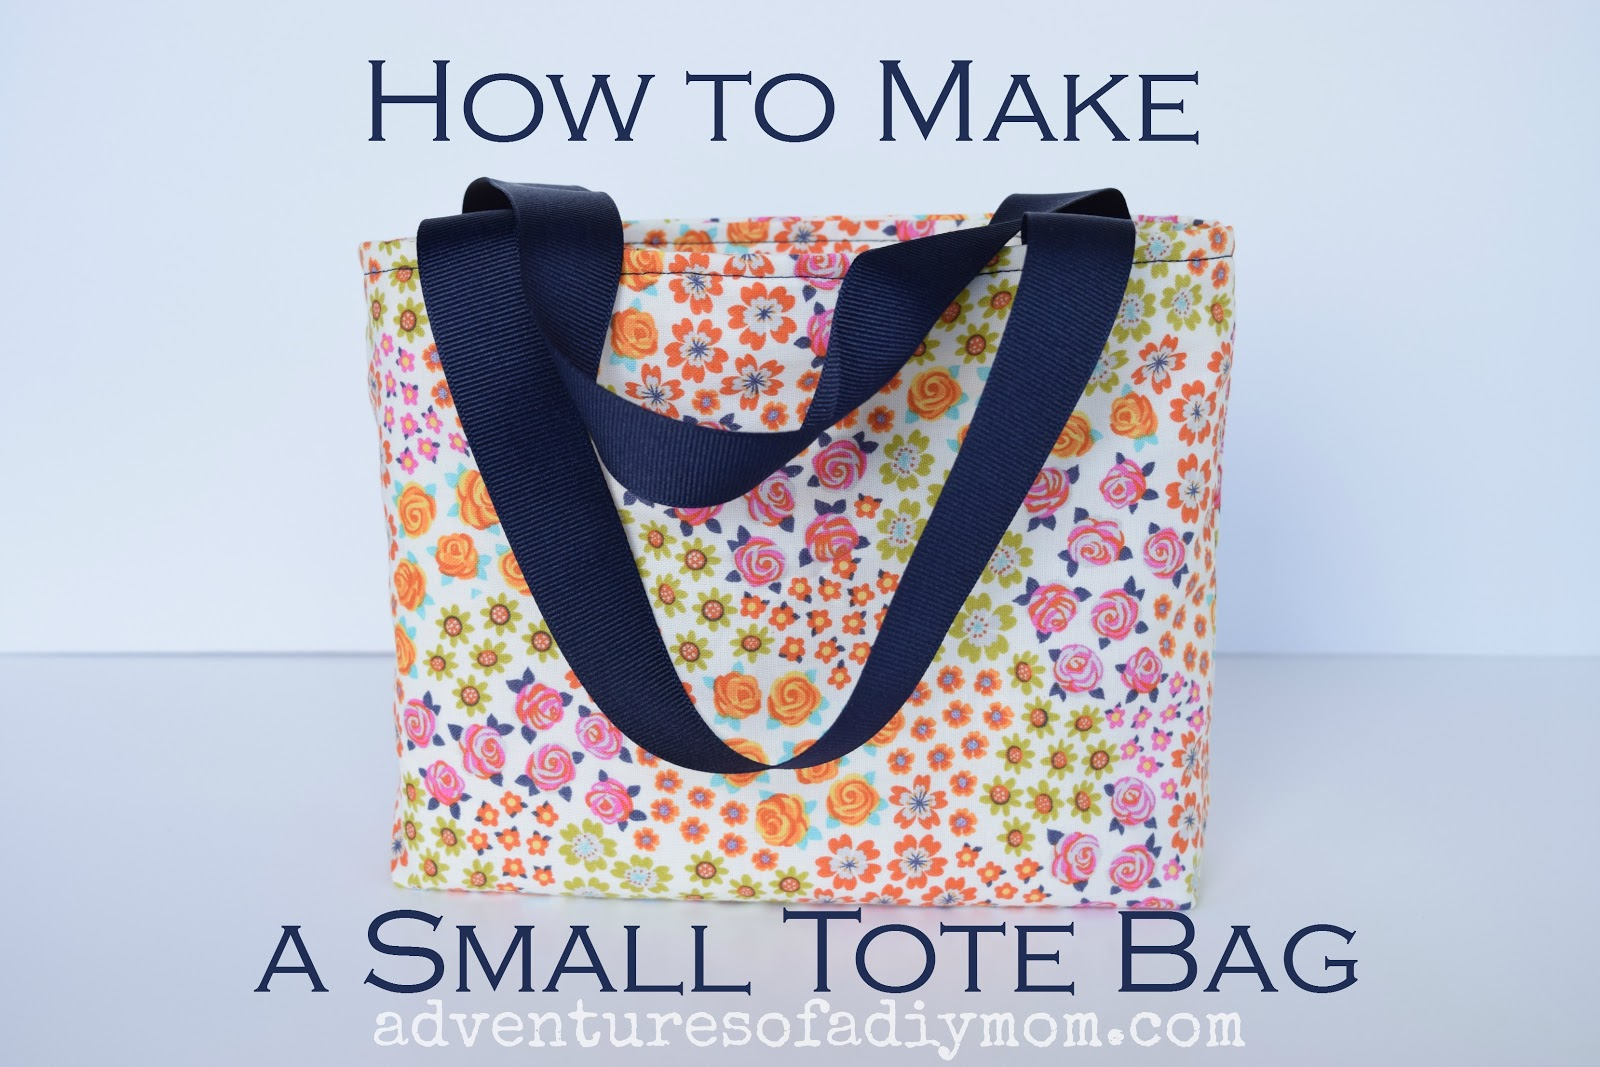 How To Make A Small Diy Tote Bag Adventures Of A Diy Mom